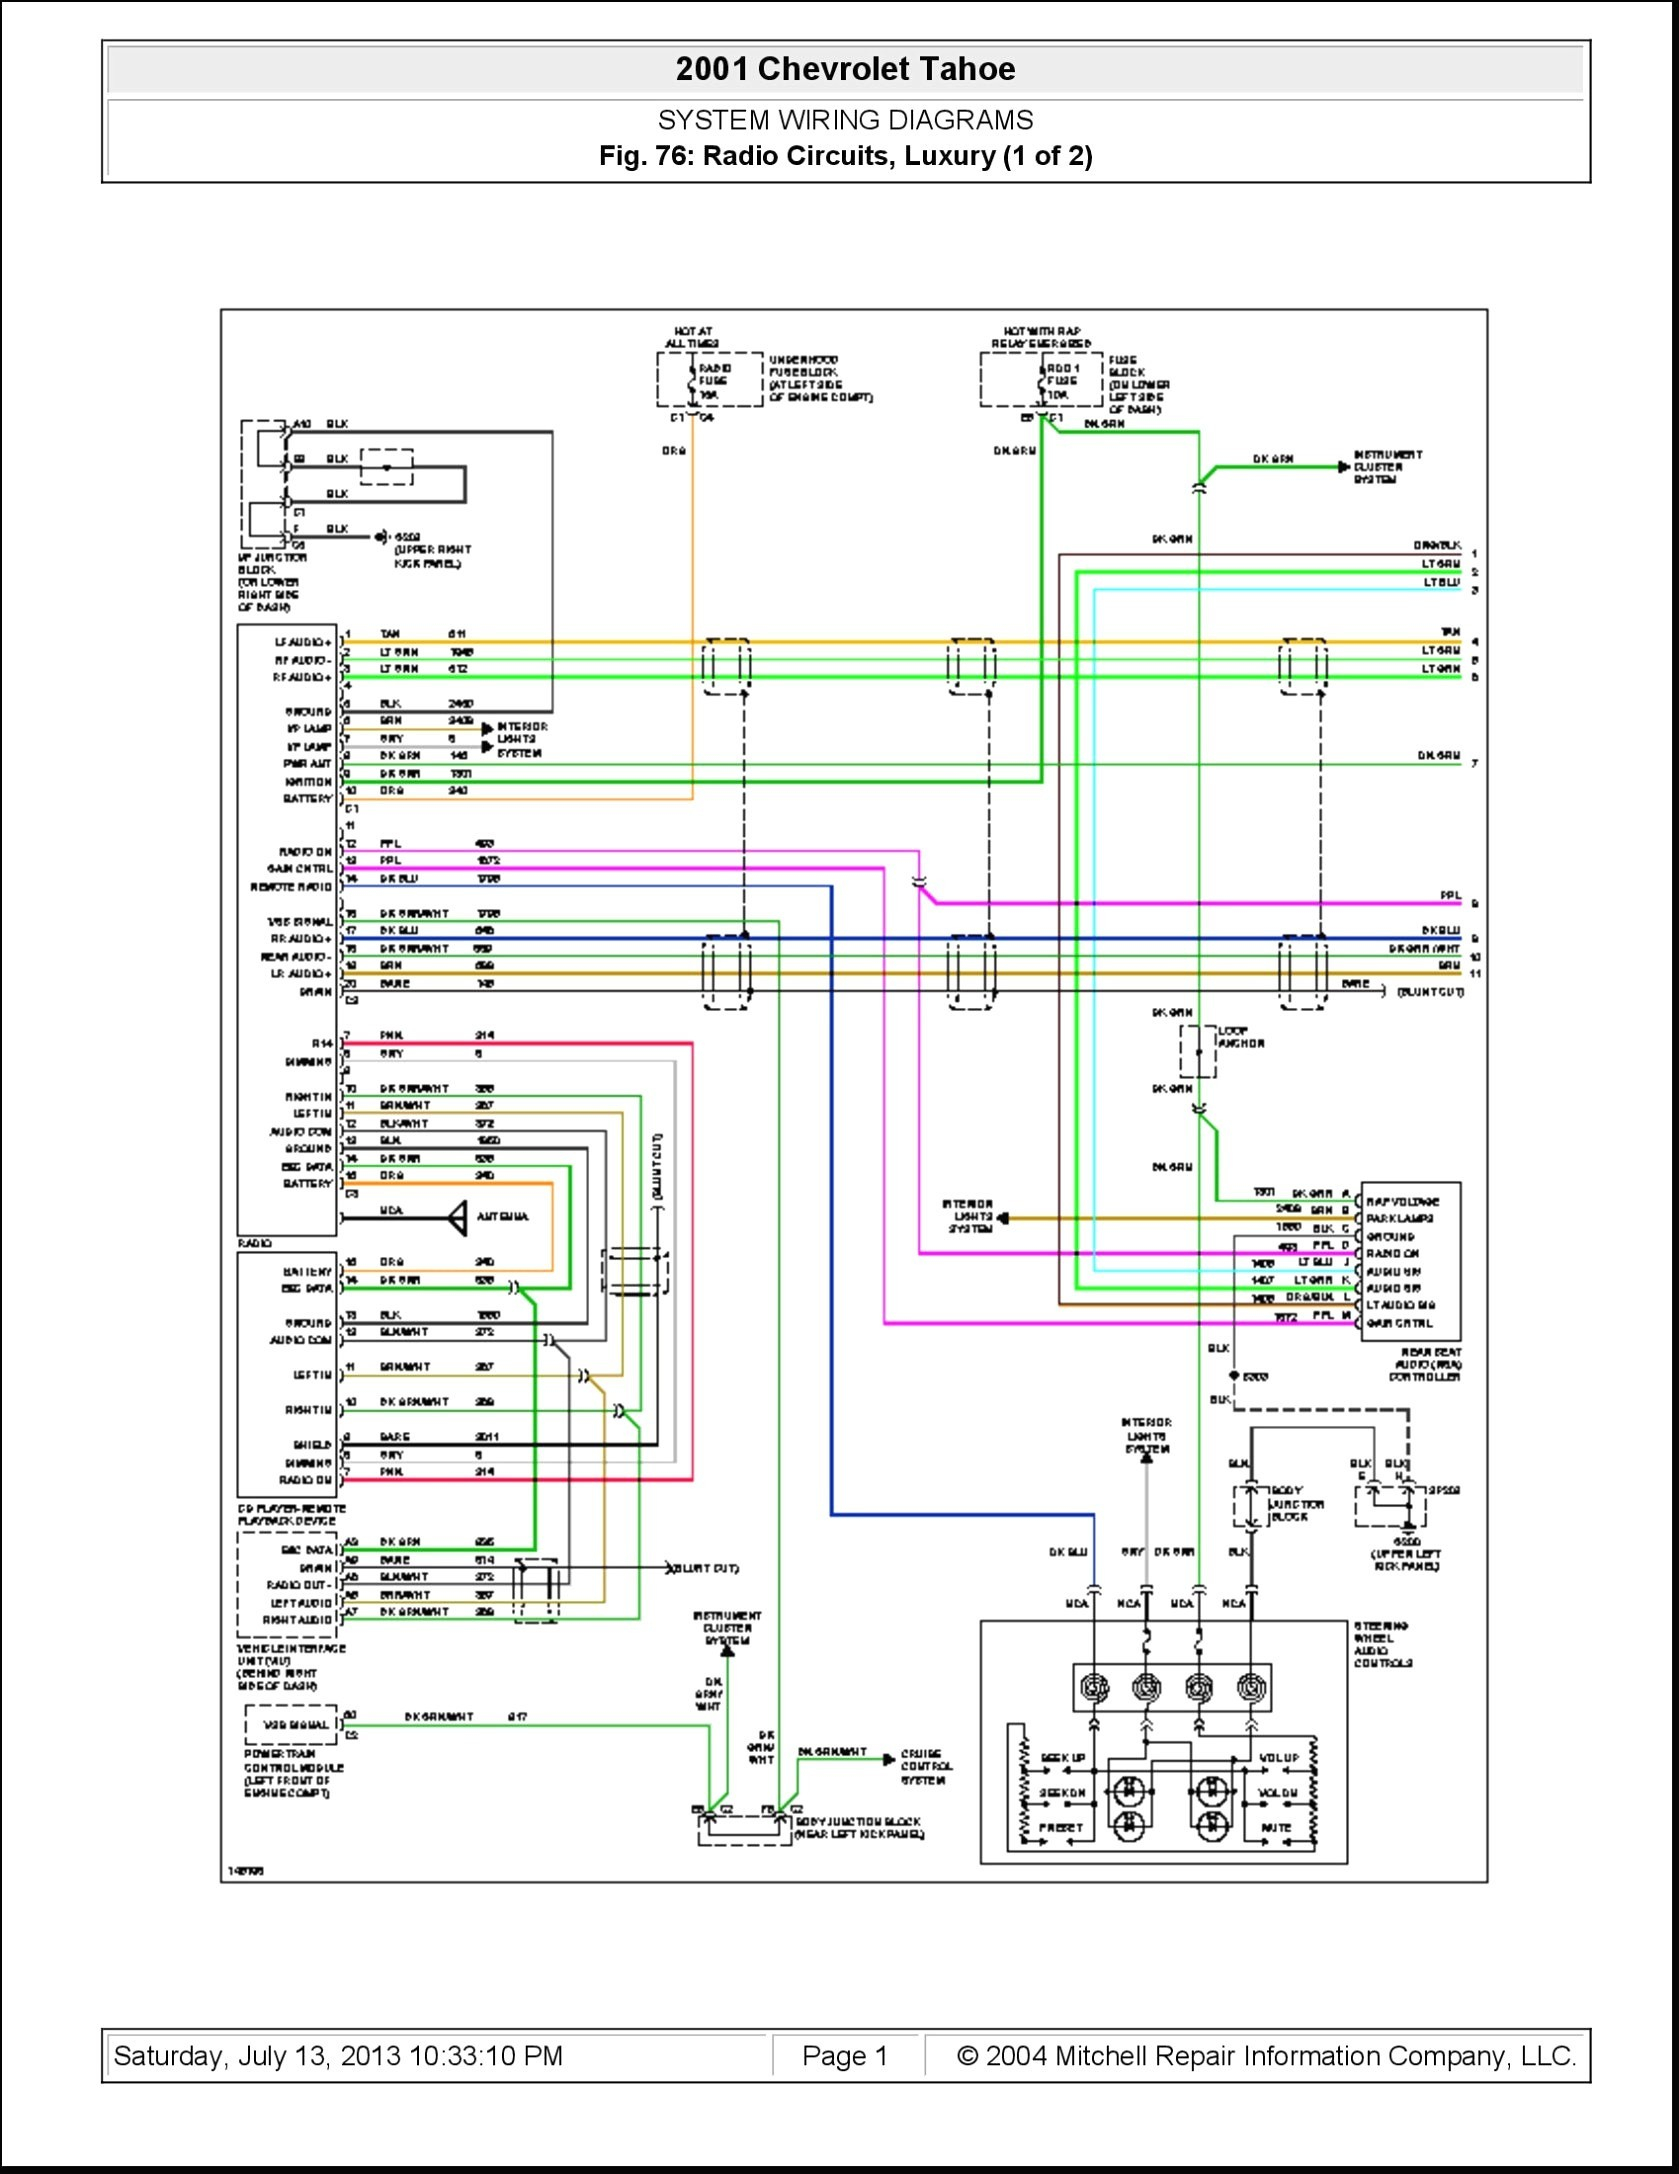 2004 Gmc Sierra Radio Wiring Diagram Sample | Wiring Diagram Sample